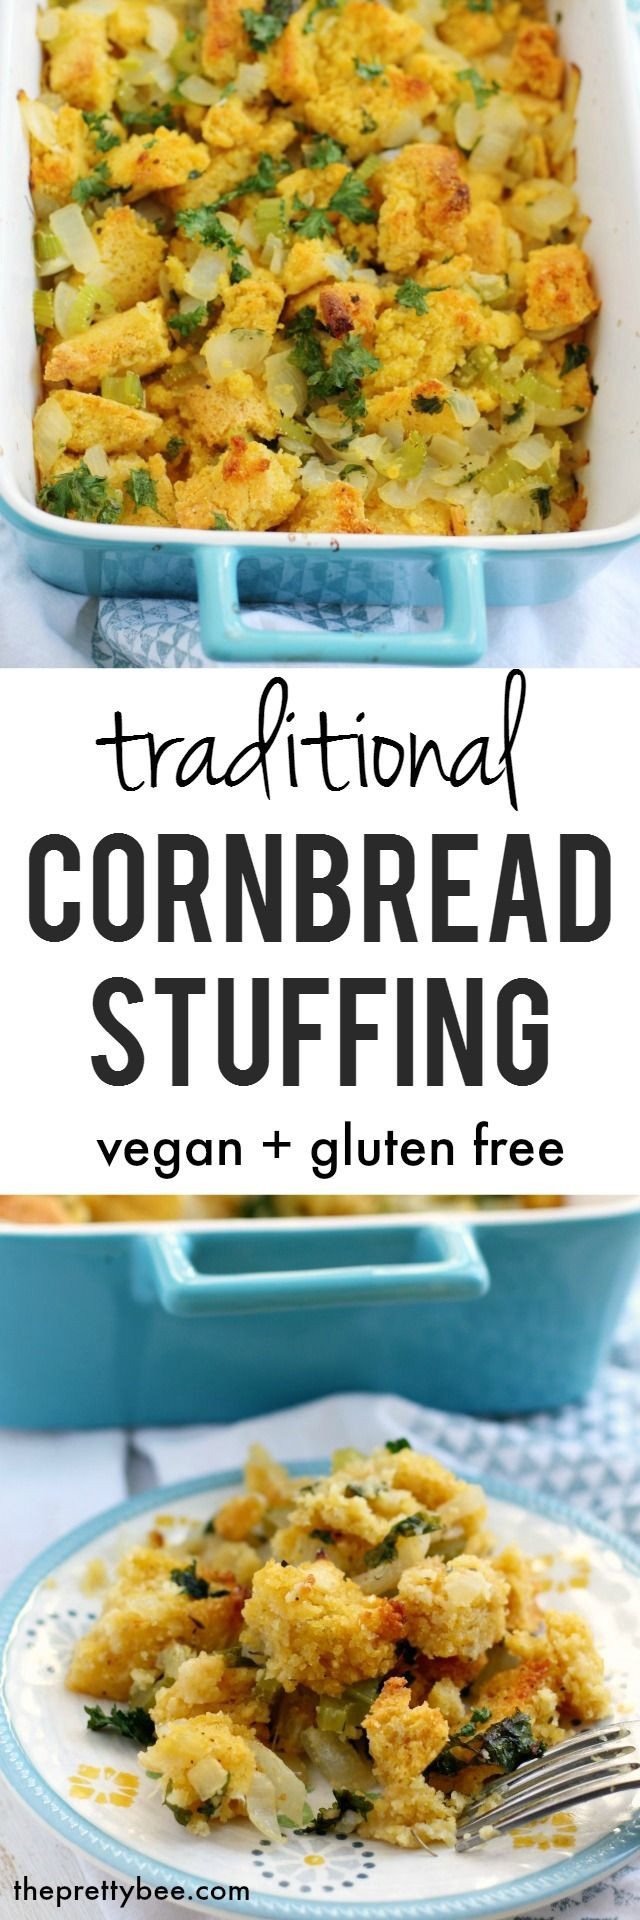 Gluten Free Vegetarian Thanksgiving  Best 25 Vegan cornbread ideas on Pinterest